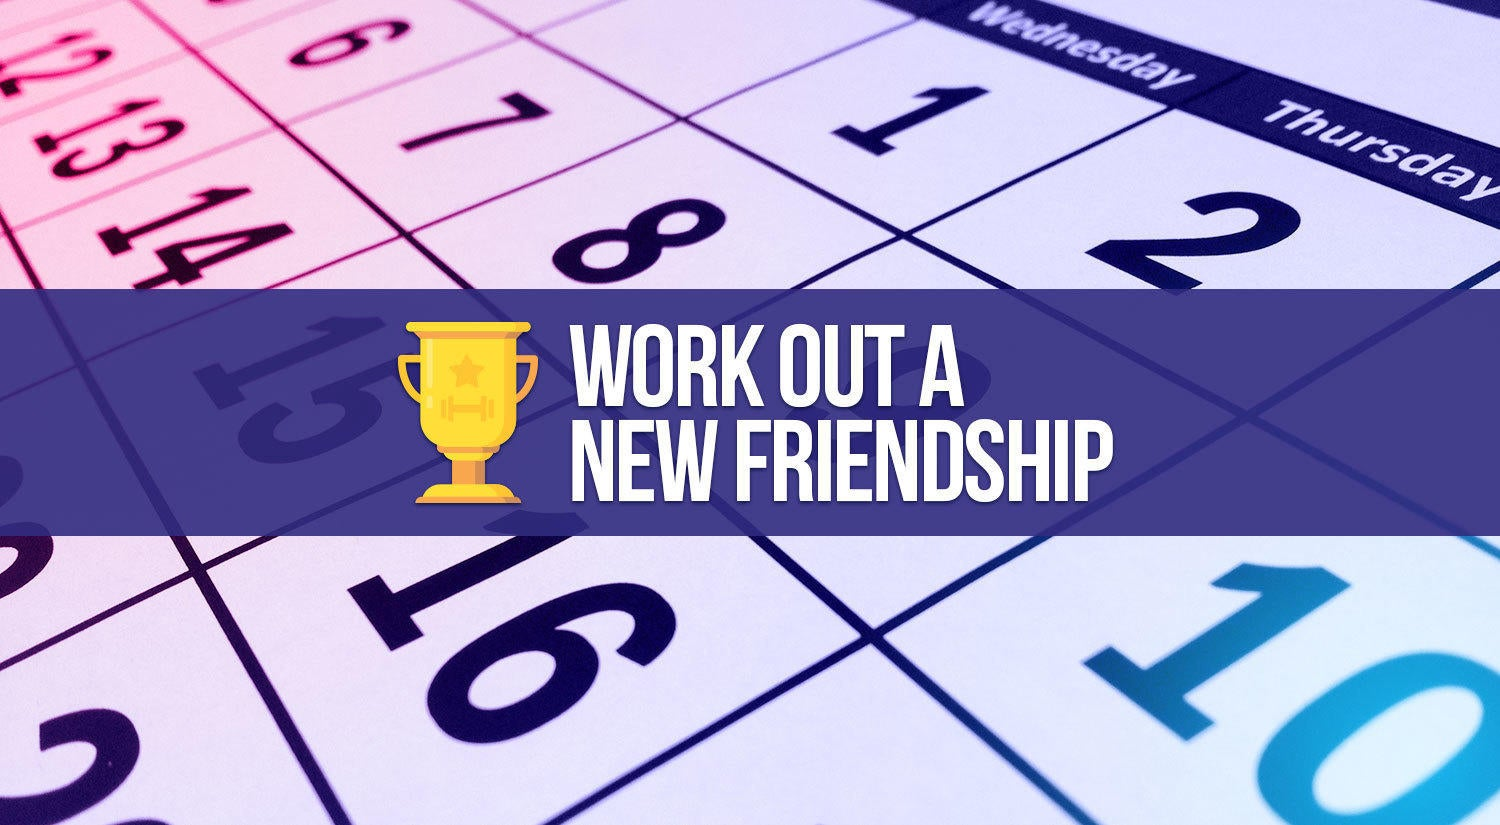 Work Out A New Friendship with an Accountability partner